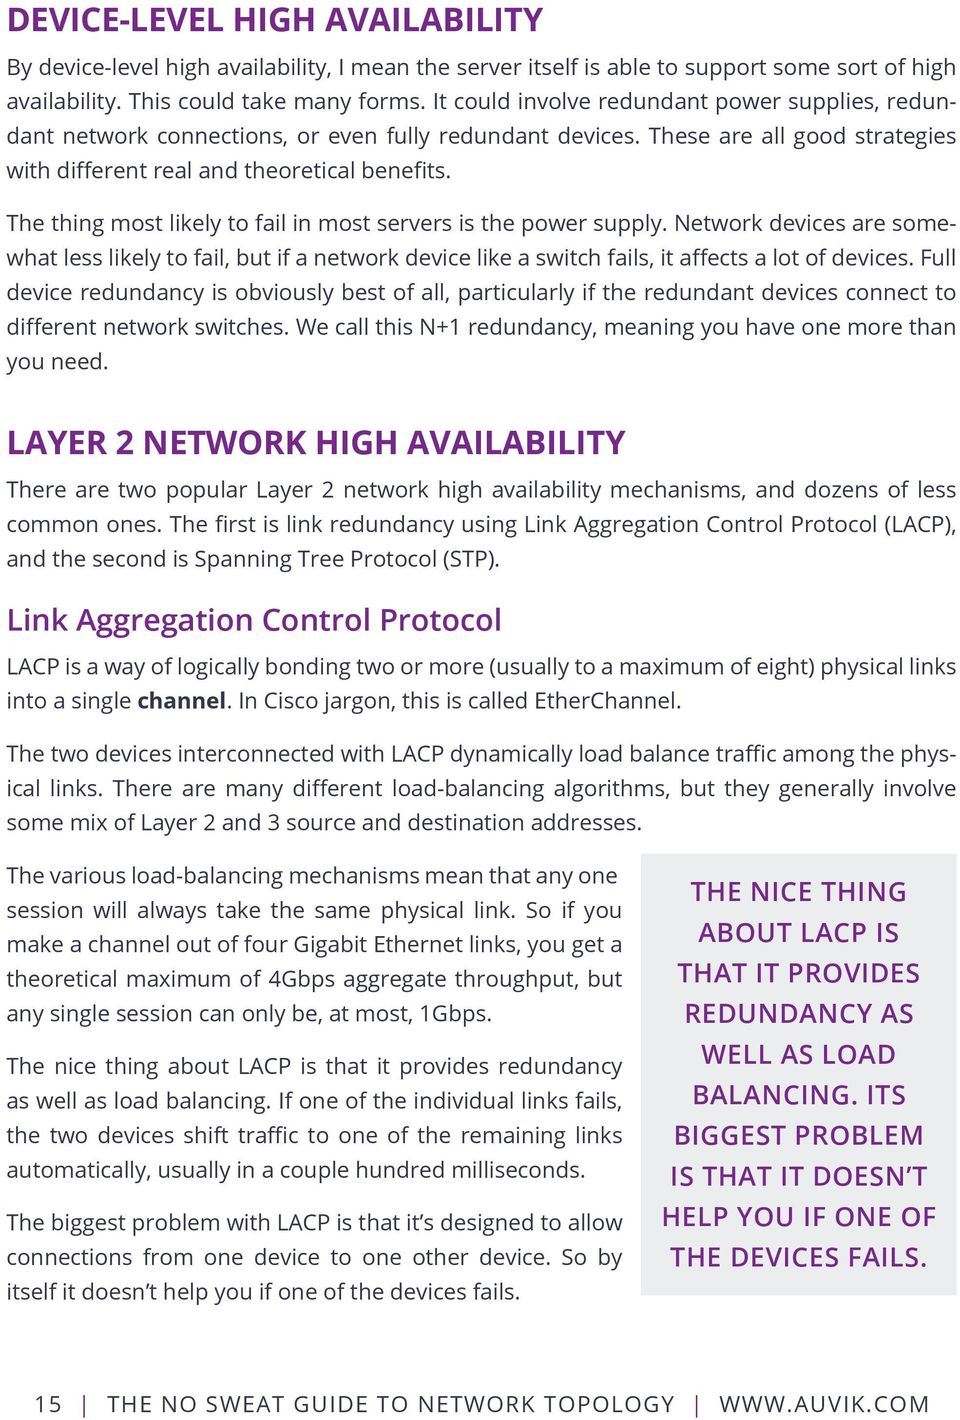 The No Sweat Guide To Network Topology Kevin Dooley Pdf 2 Way Switch Meaning Thing Most Likely Fail In Servers Is Power Supply Devices